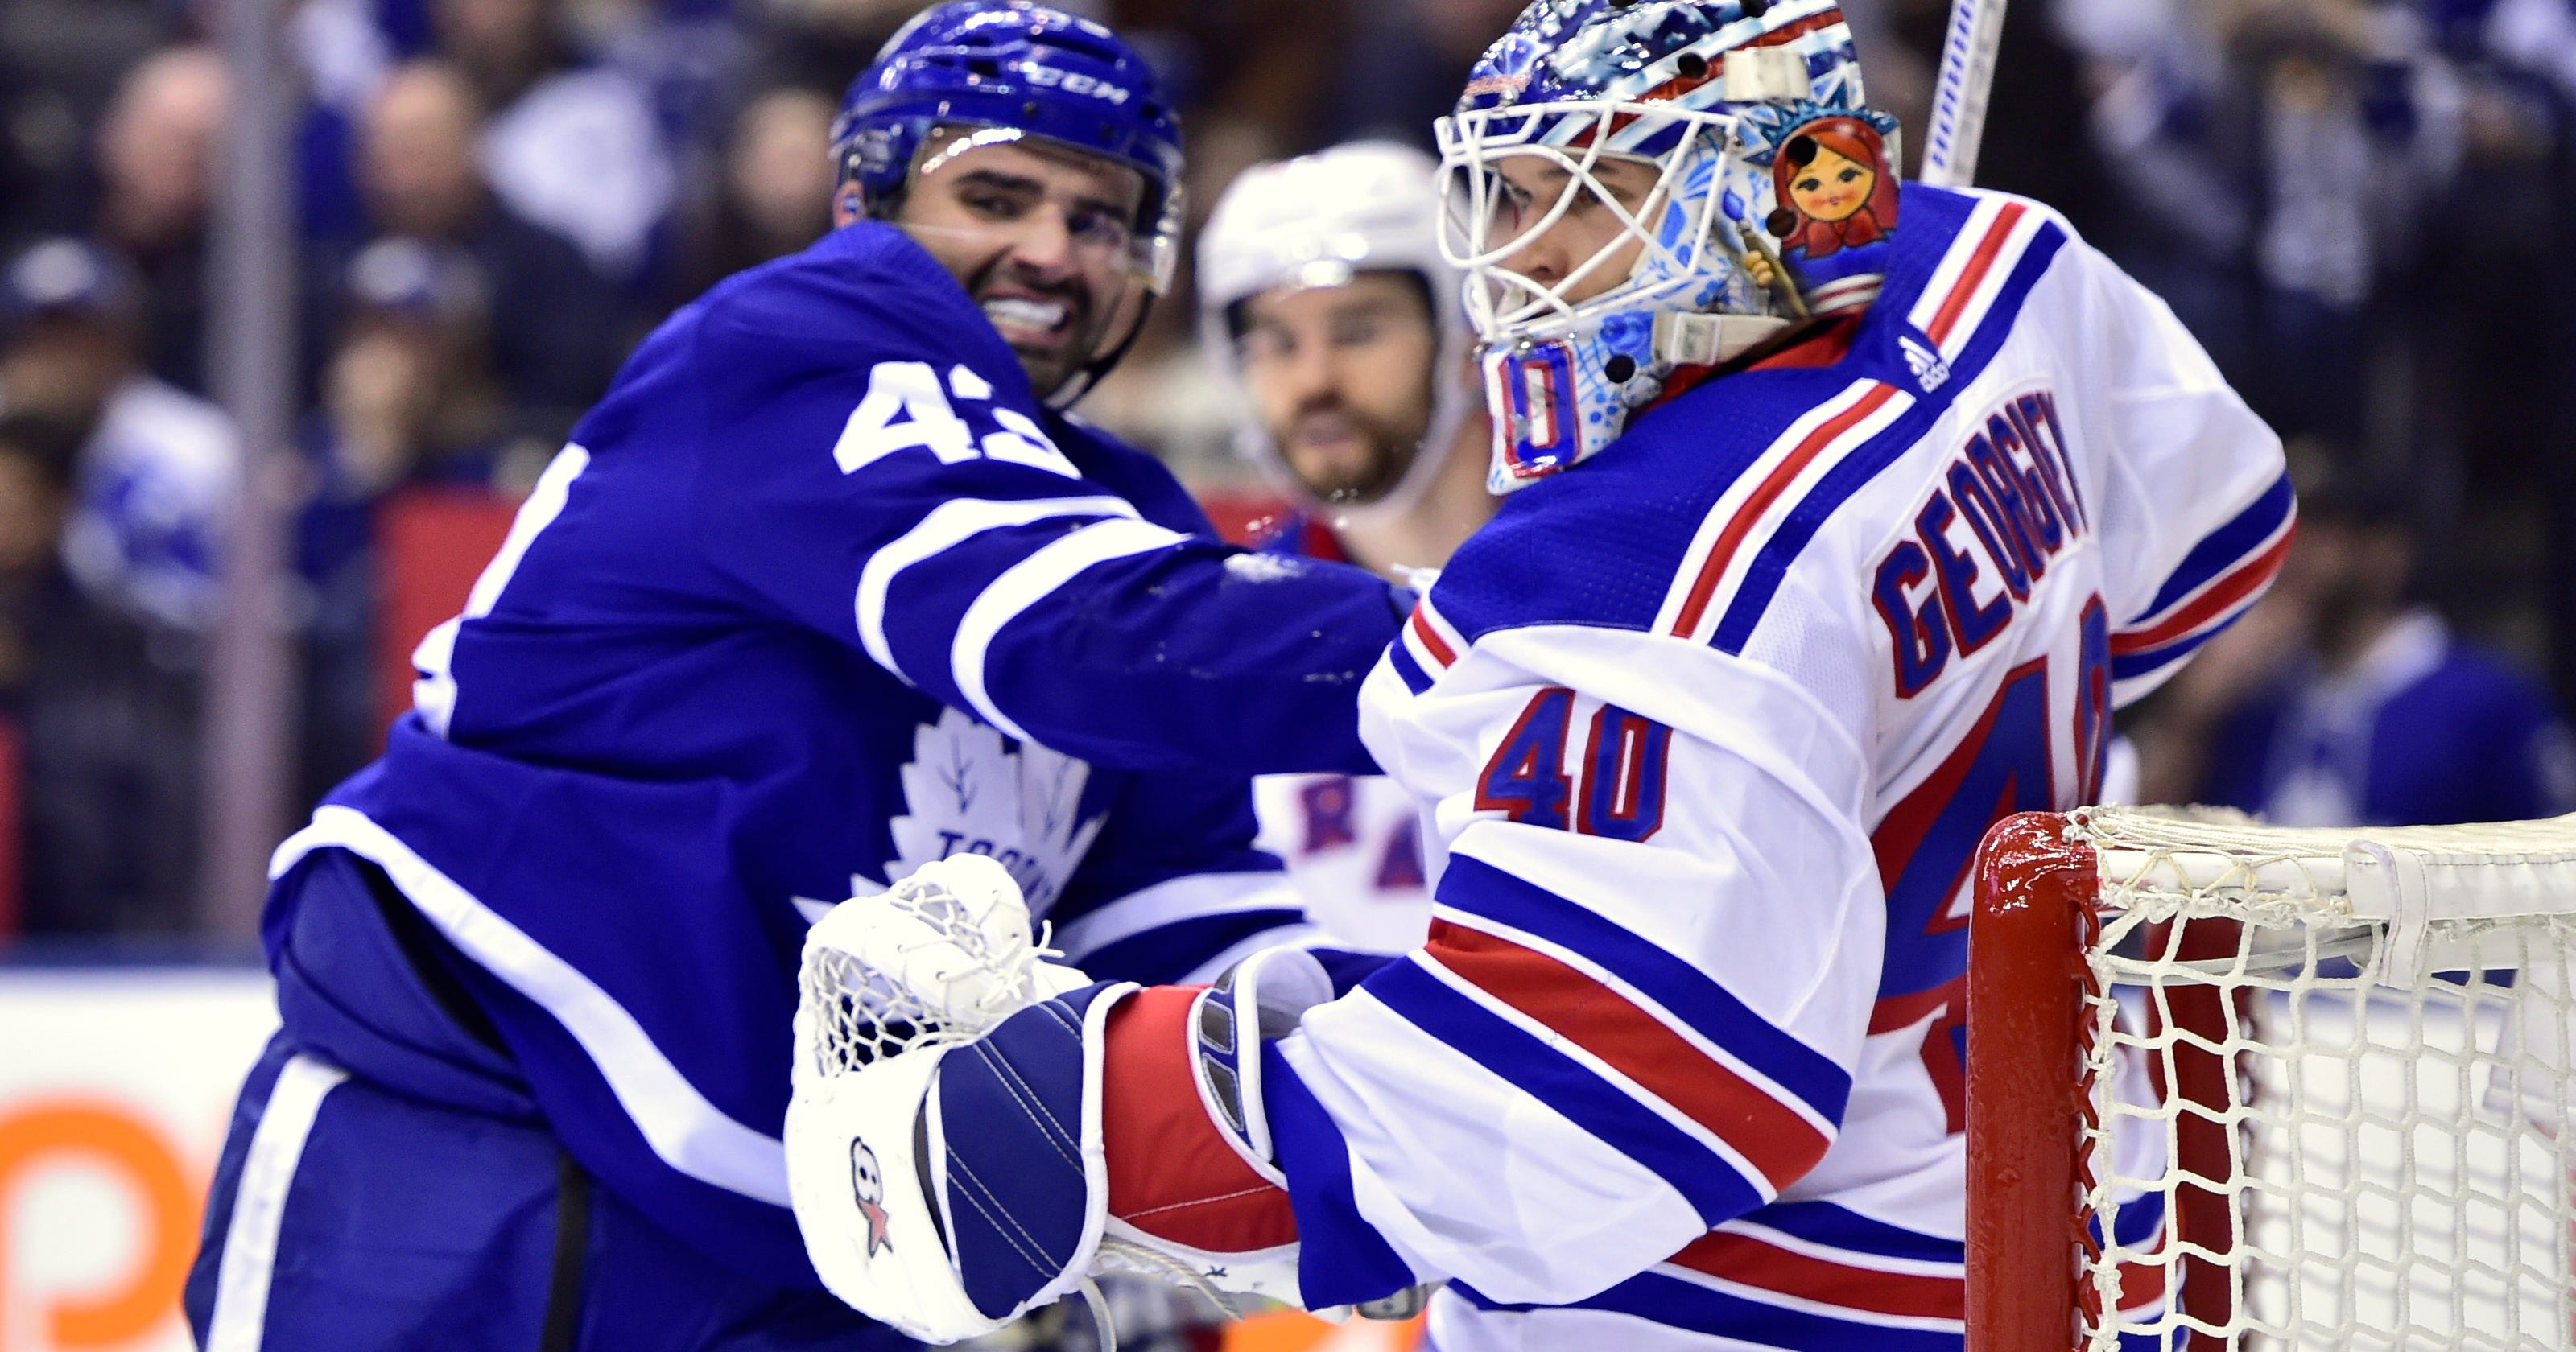 Marner lifts Maple Leafs over Rangers in wild third period a877a709a